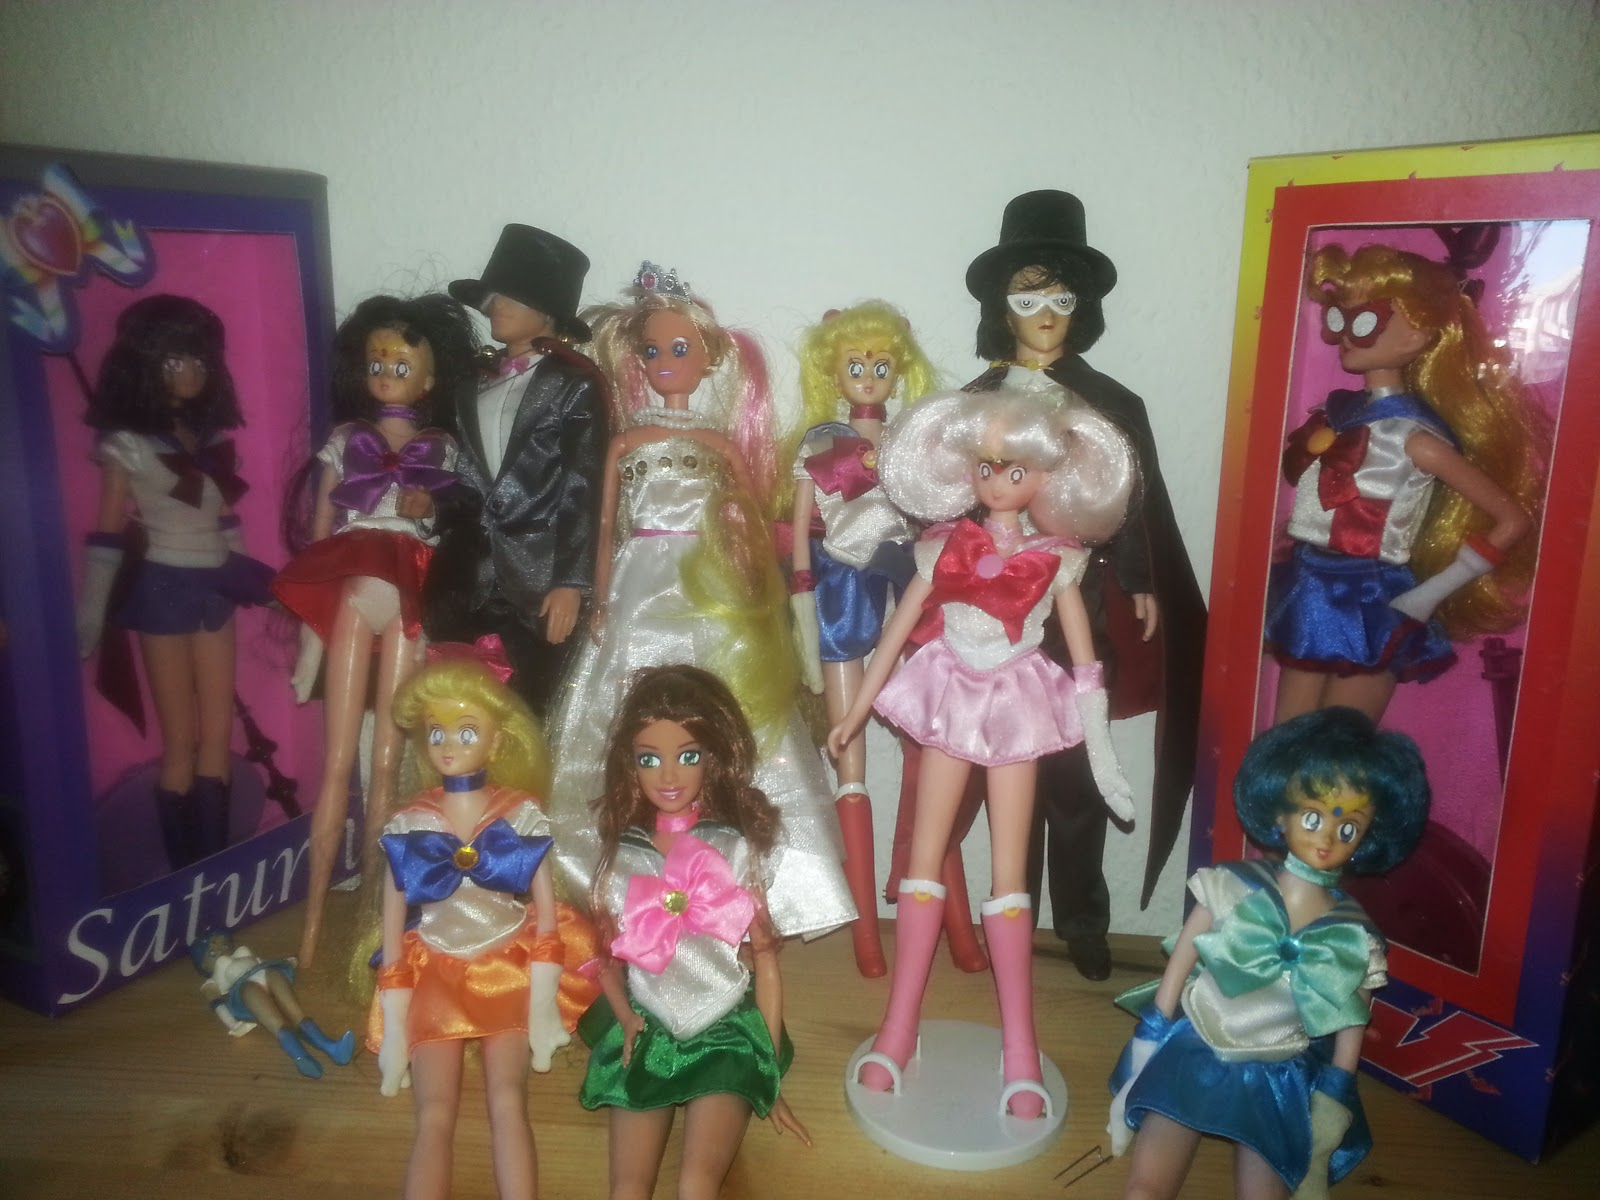 Sailor Moon dolls